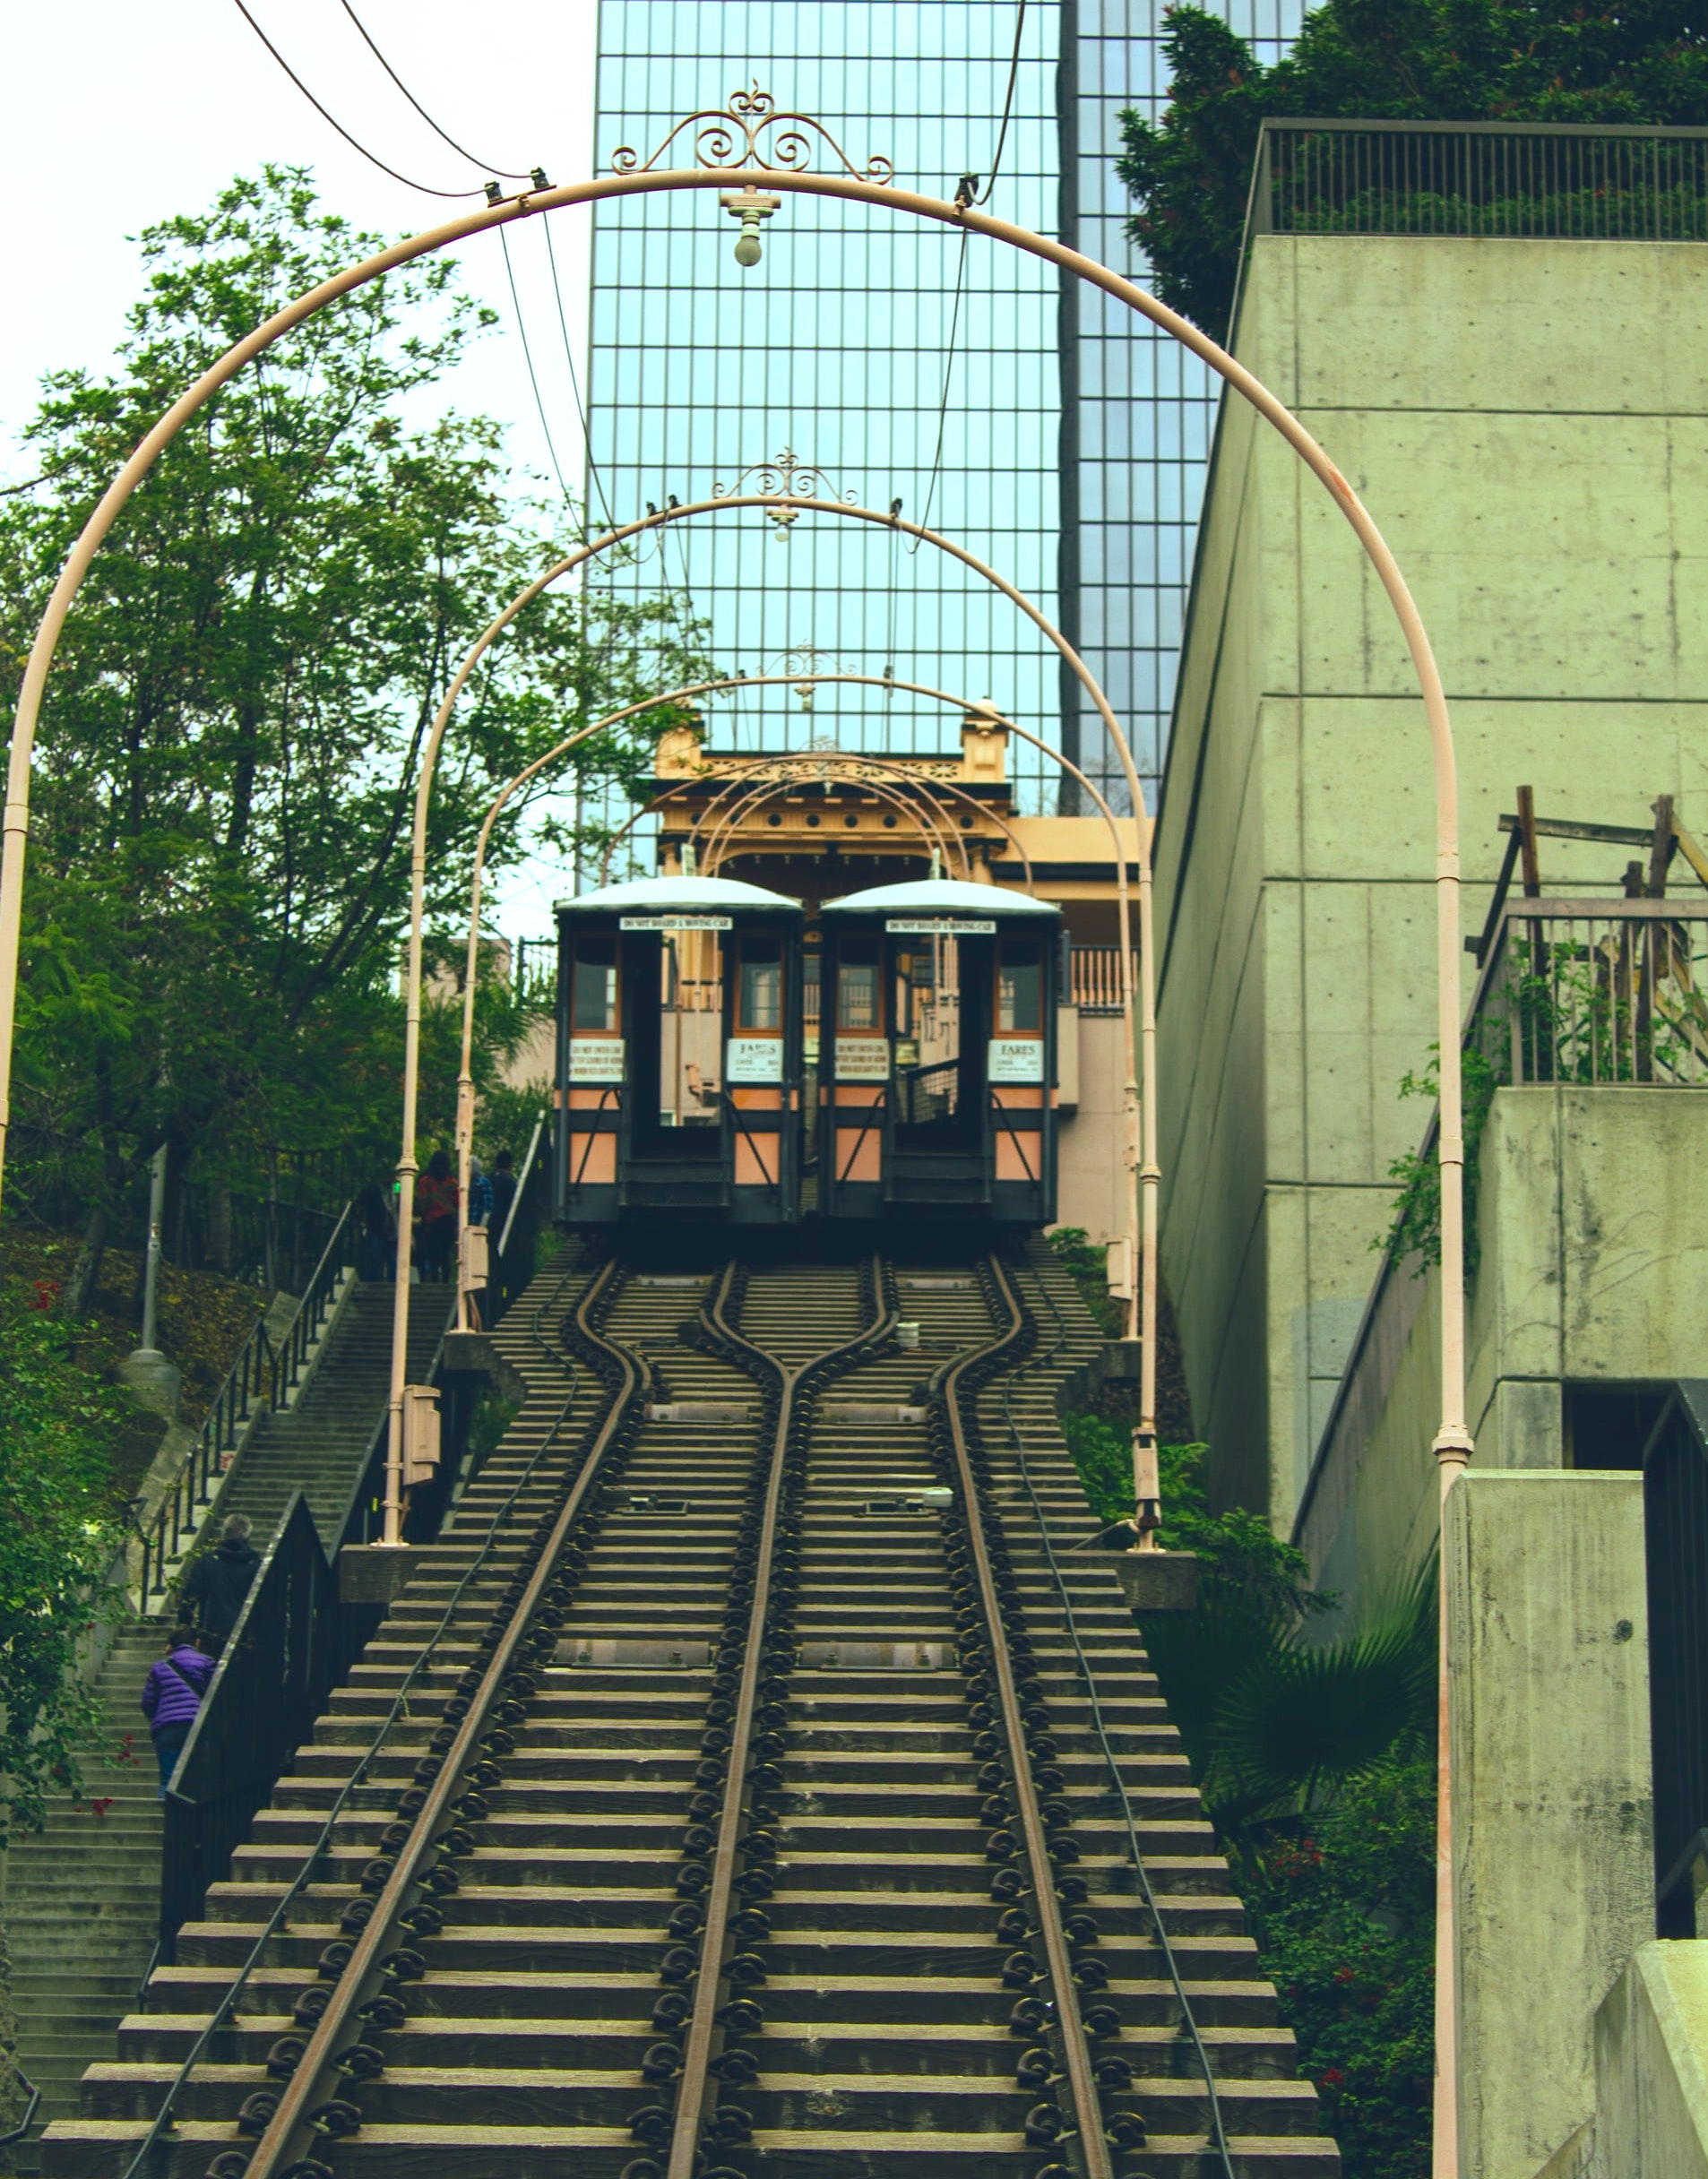 View of the cable cars at Angels Flight